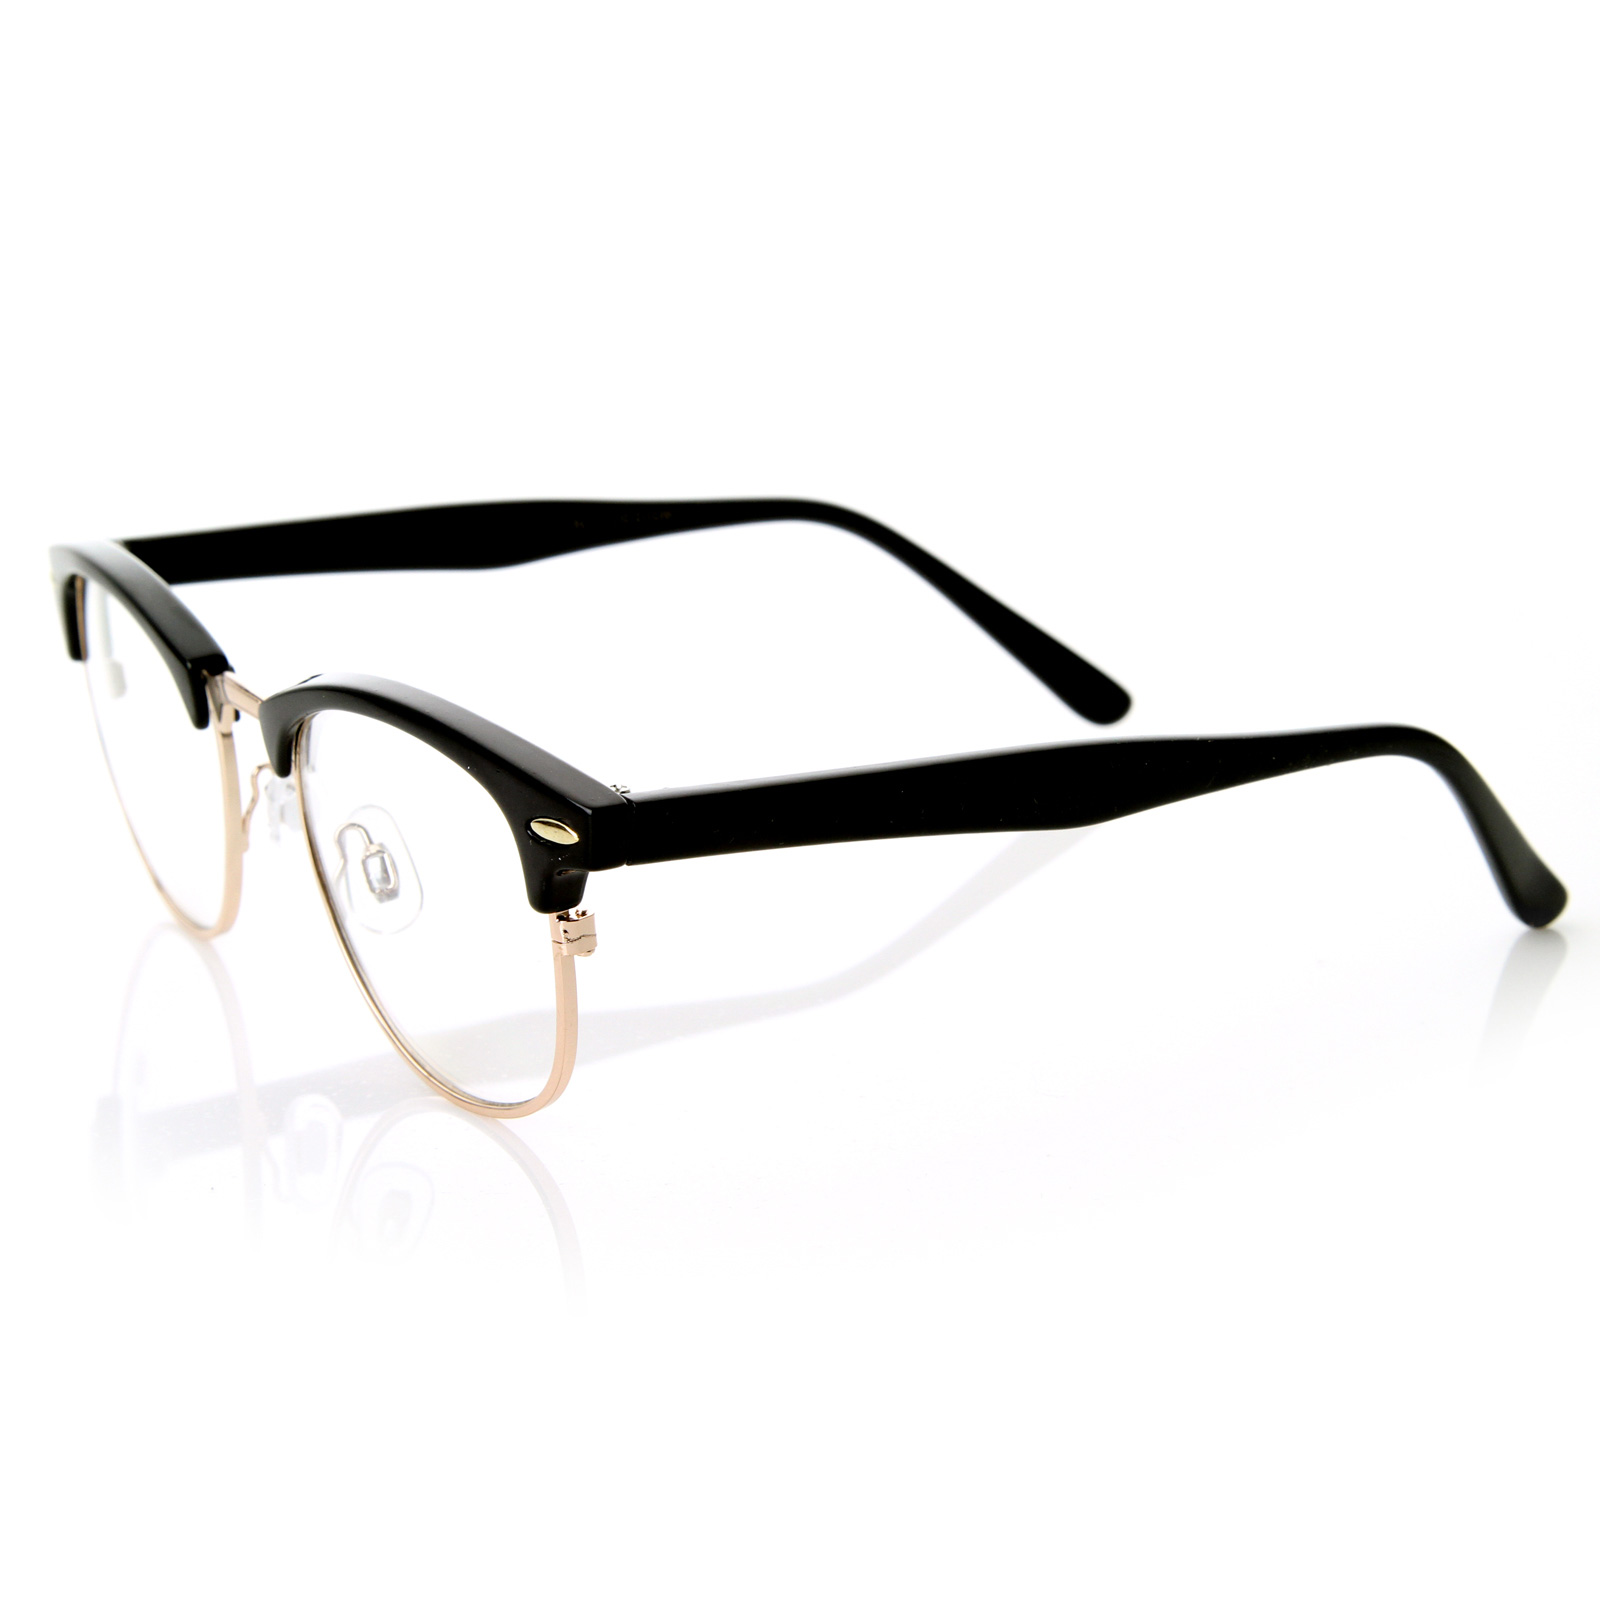 Half Frame Fake Glasses : New Original RX Optical Classical Clear Lens Half Frame ...